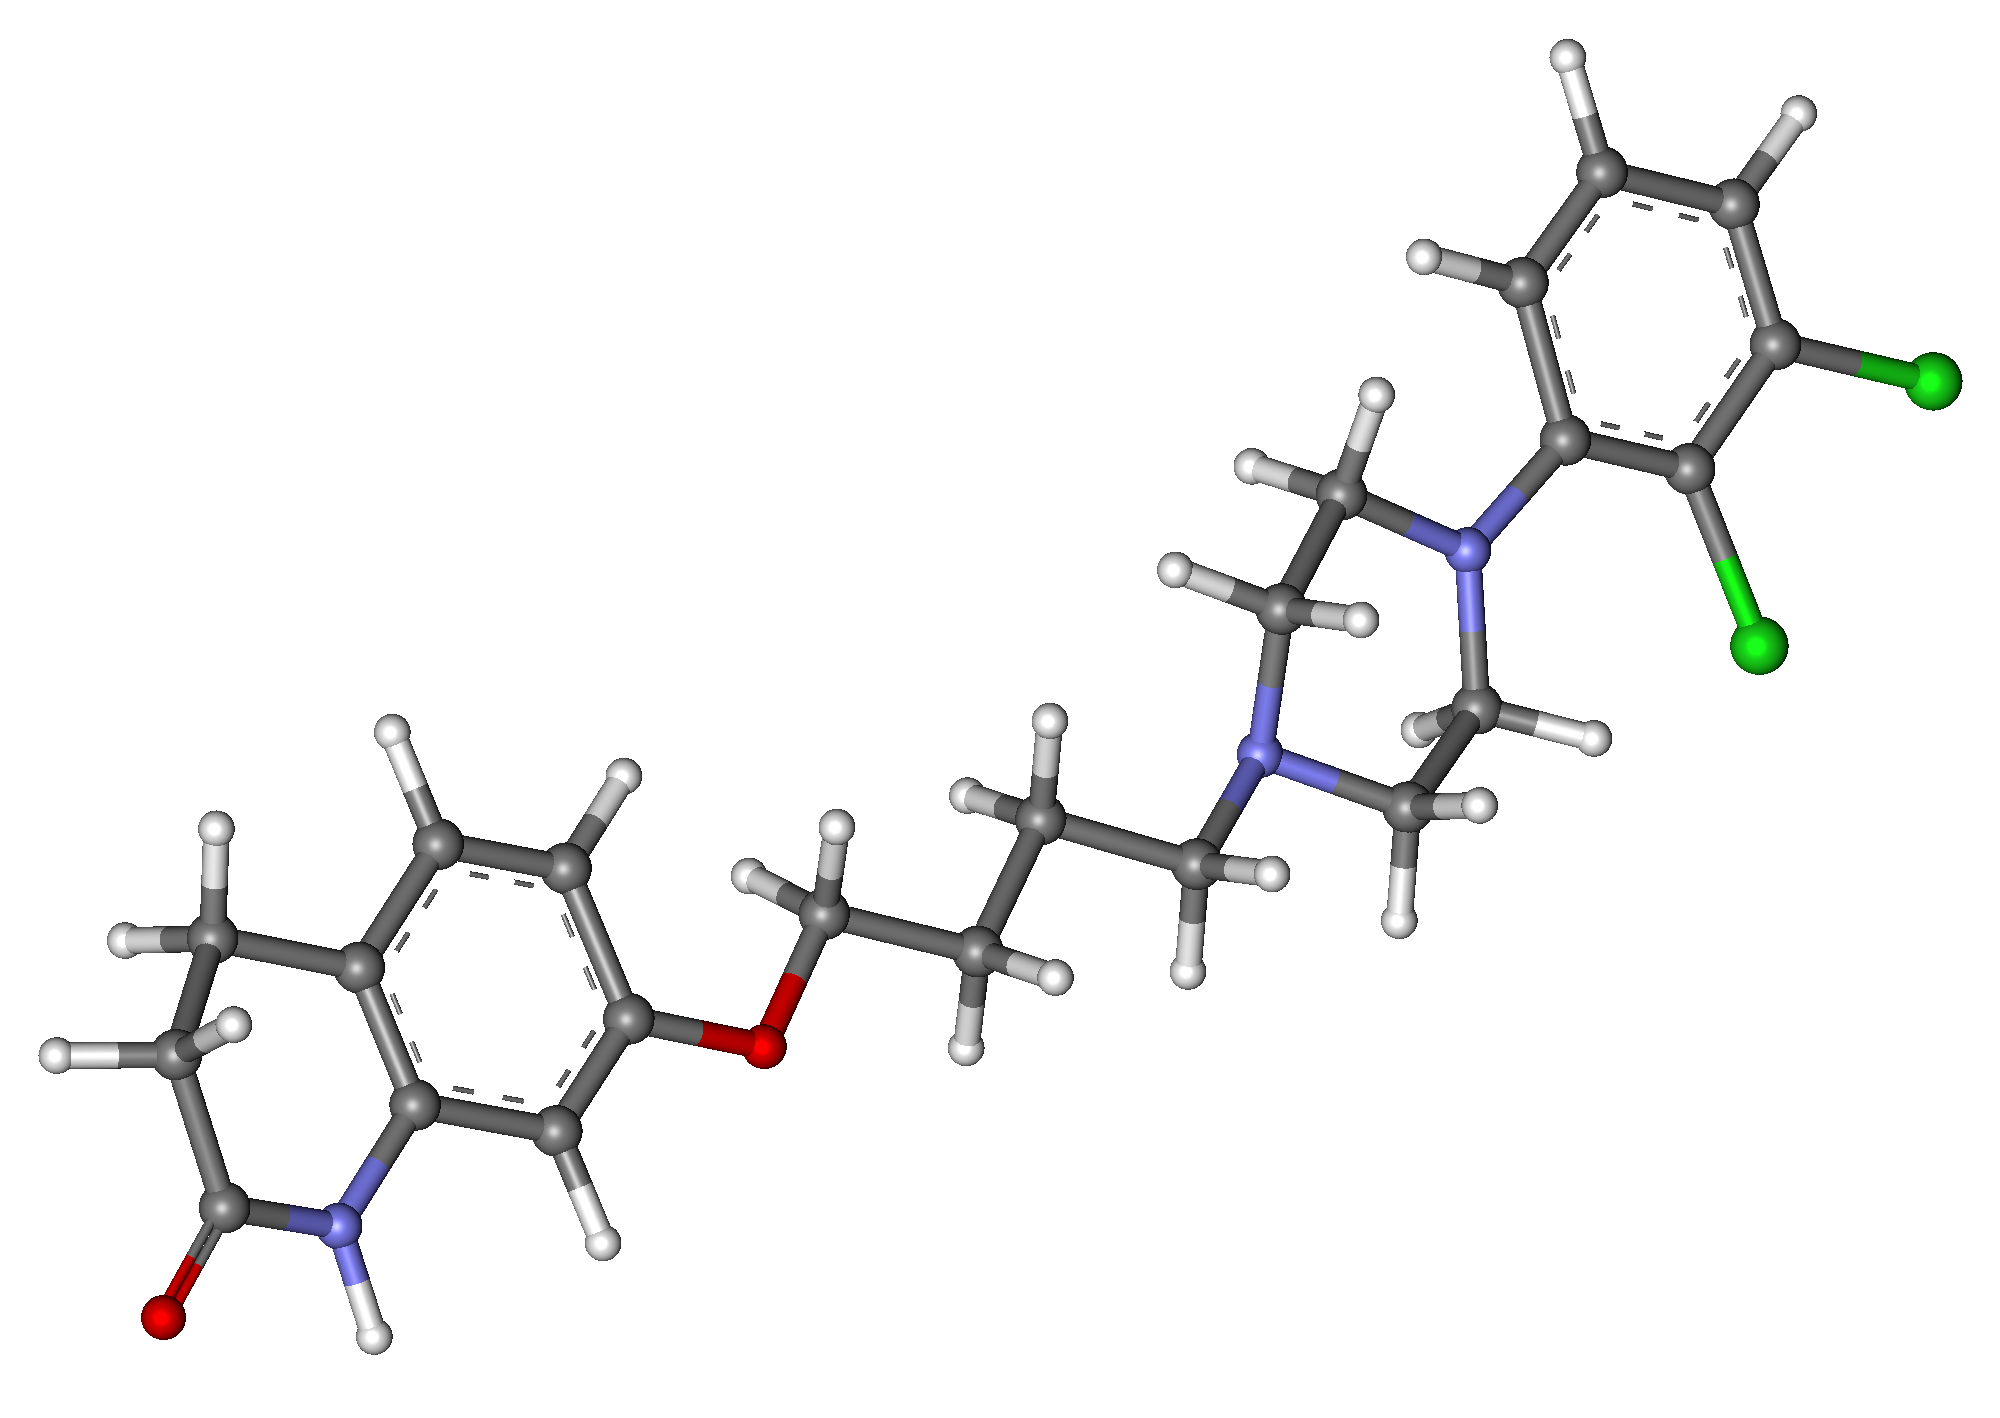 File:Aripiprazole ball-and-stick.png - Wikimedia Commons Abilify Structure